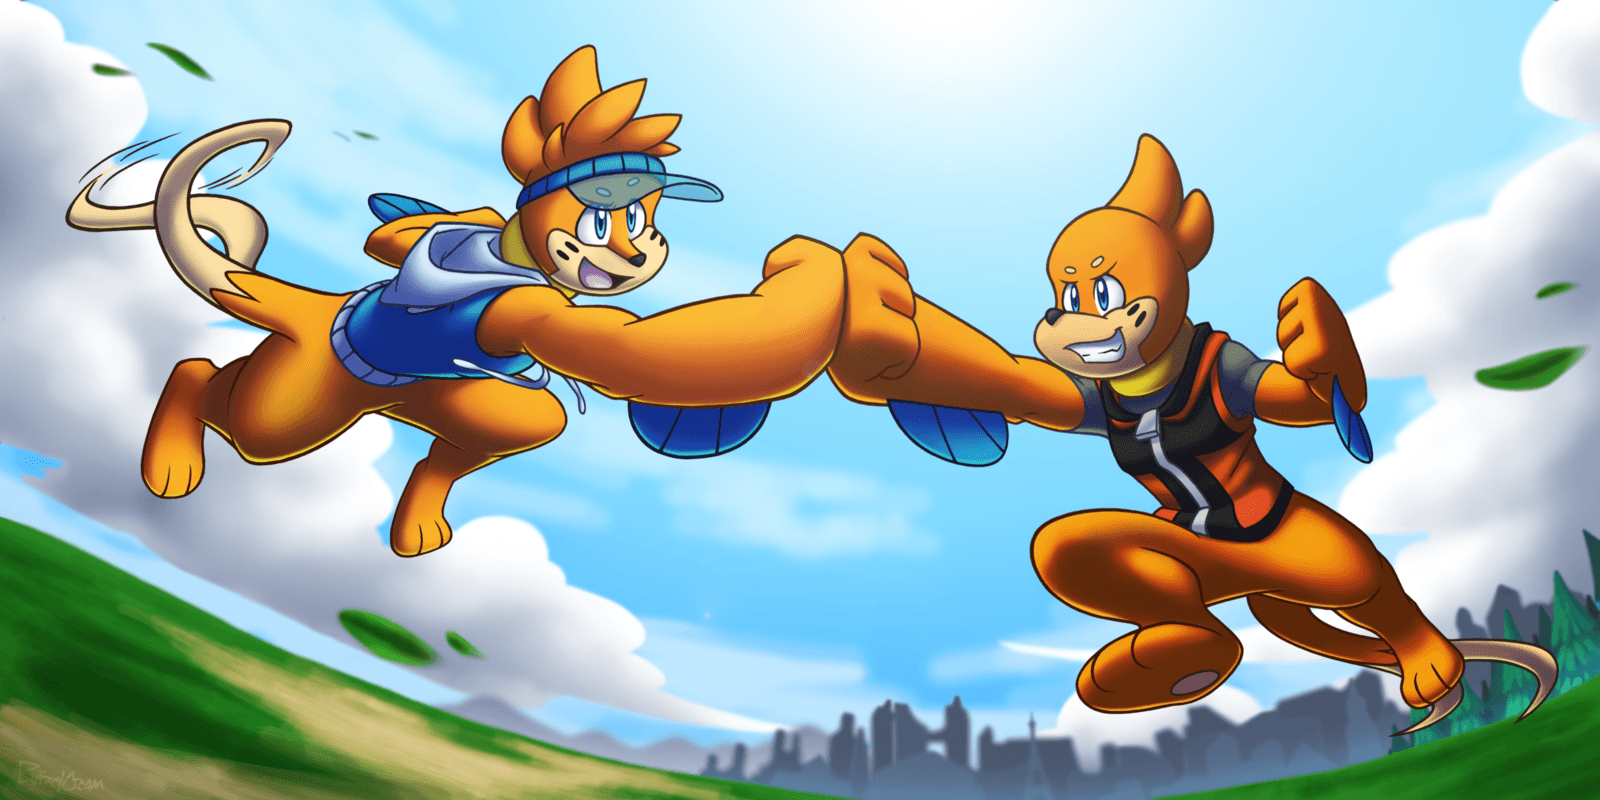 Buizel Bro Fist! by BuizelCream on DeviantArt